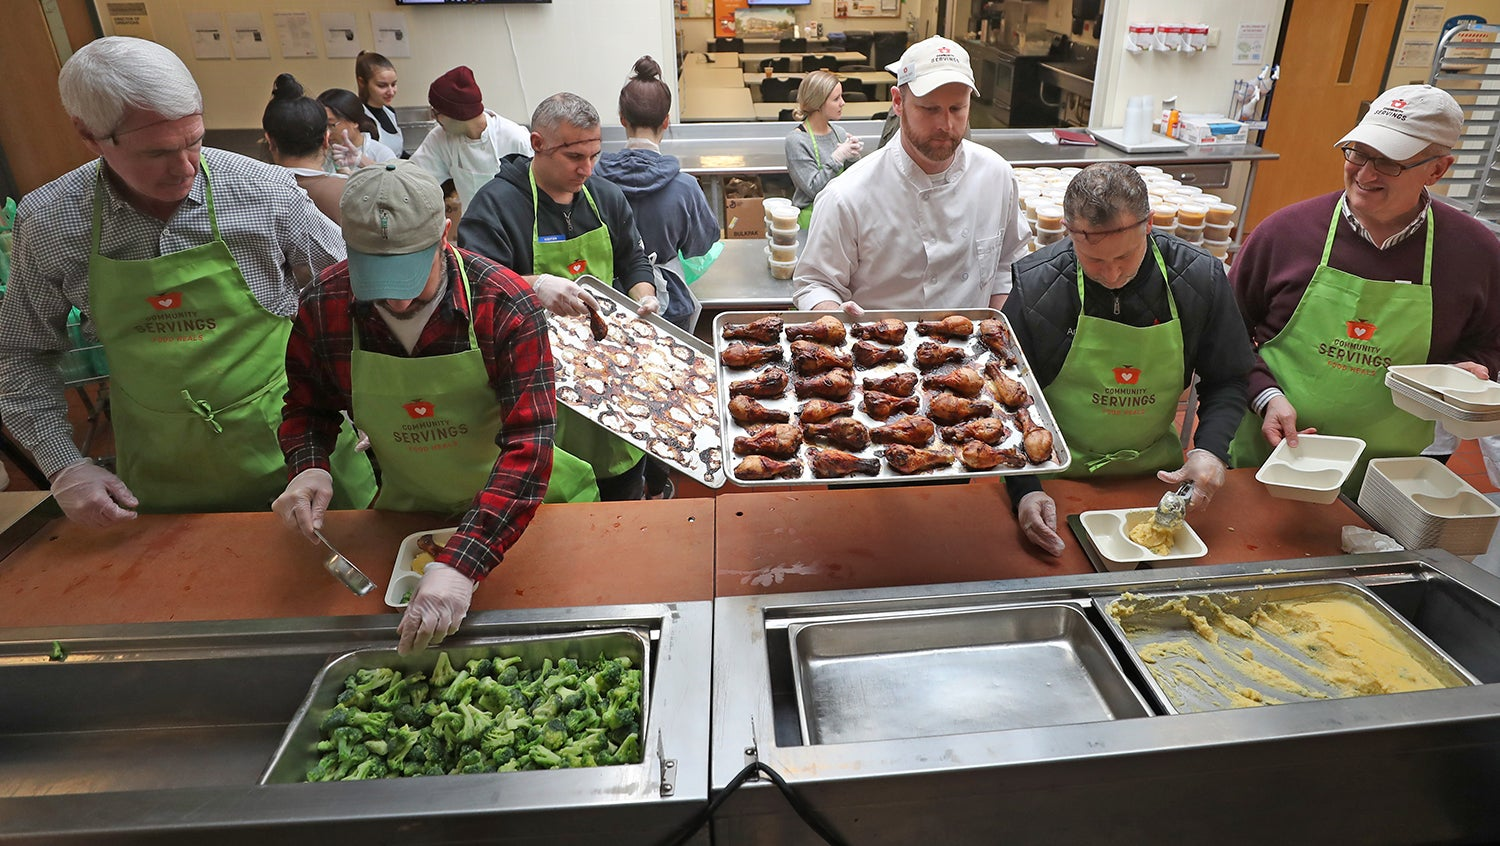 Community Servings volunteers prepare medically tailored meals to be delivered to patients with complex dietary needs.